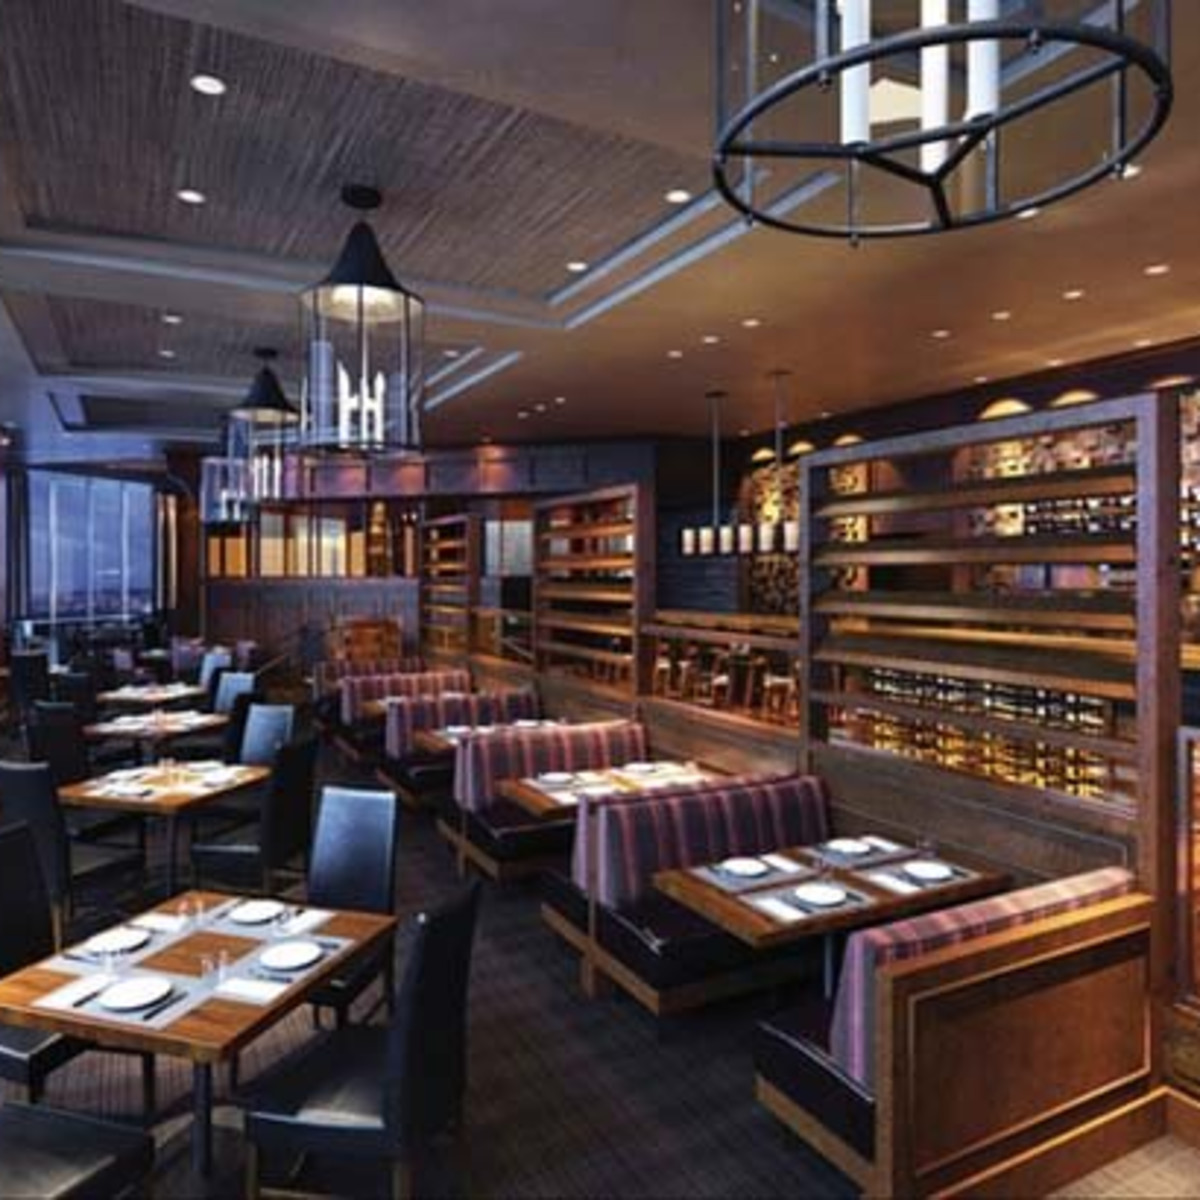 Ser Steak + Spirits, Hilton Anatole